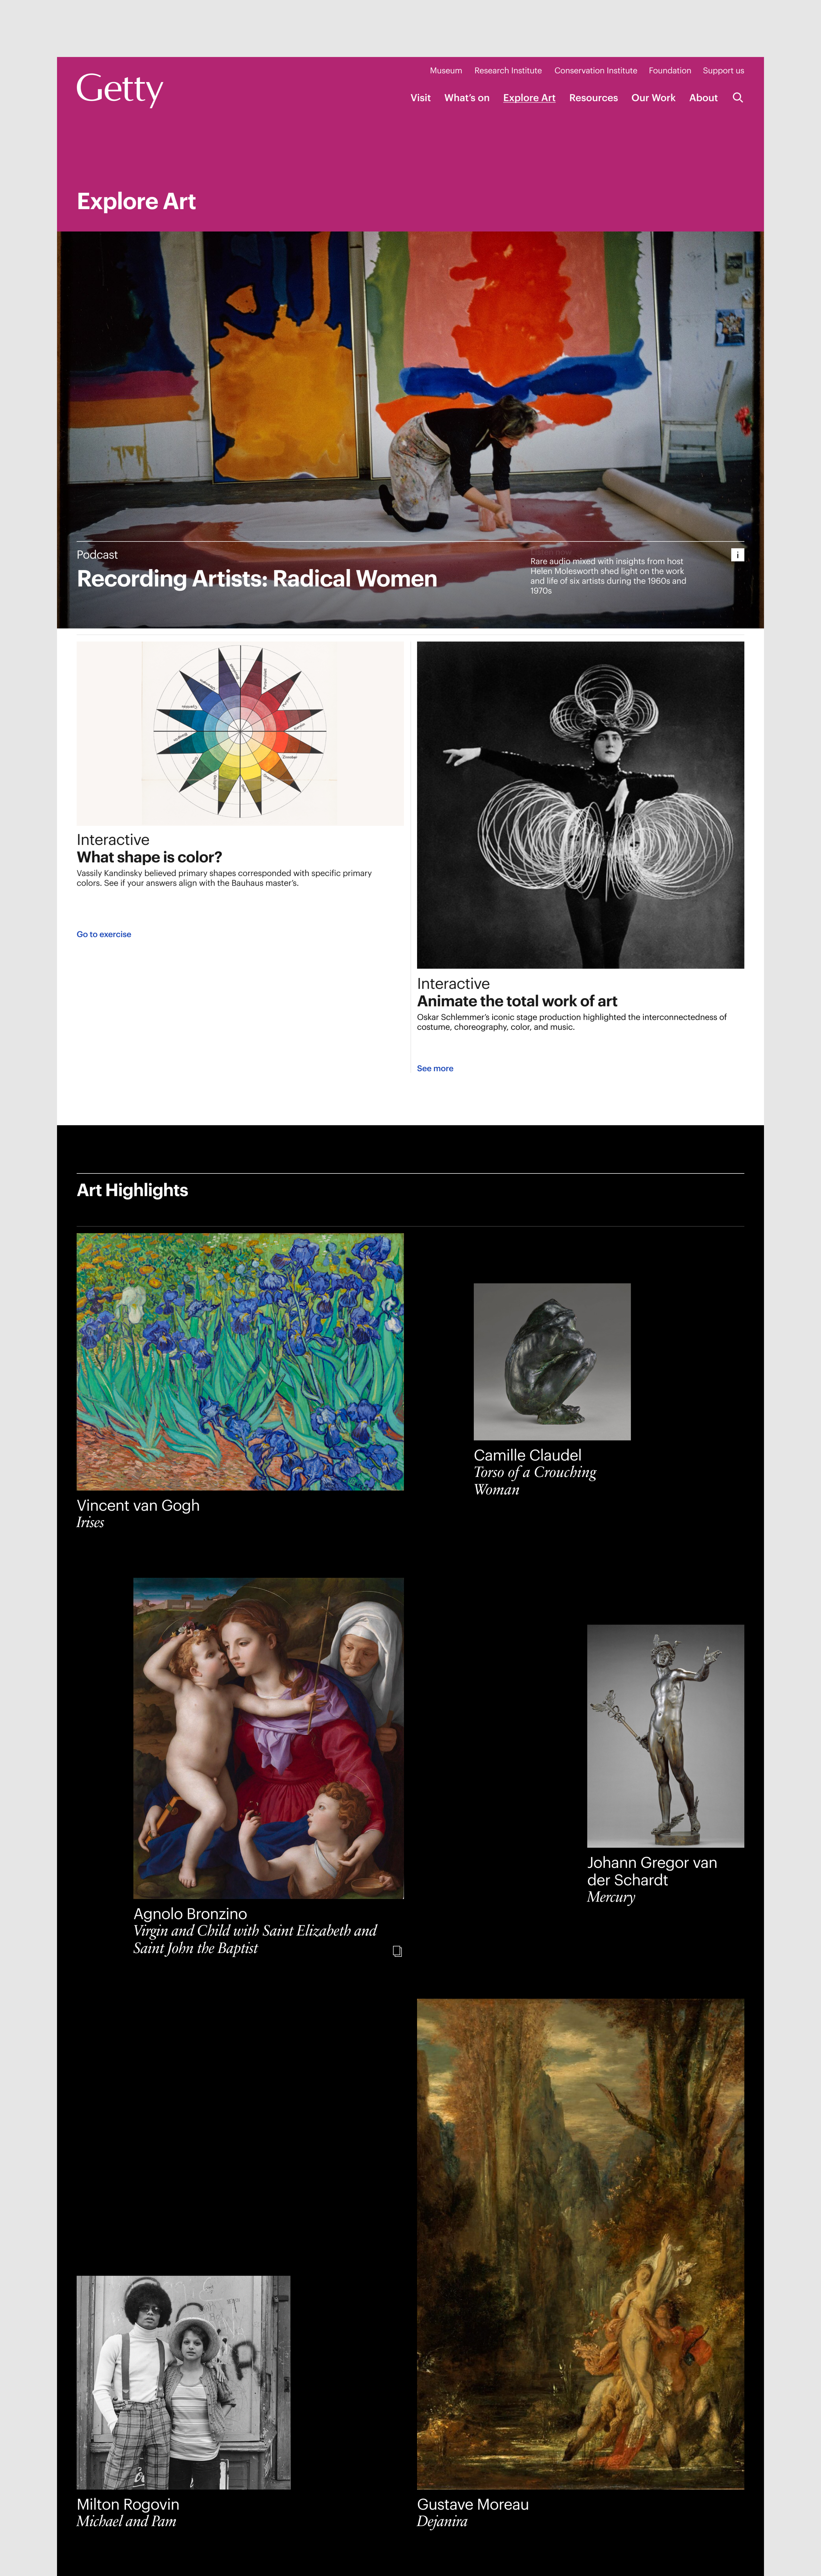 Getty explore art landing page